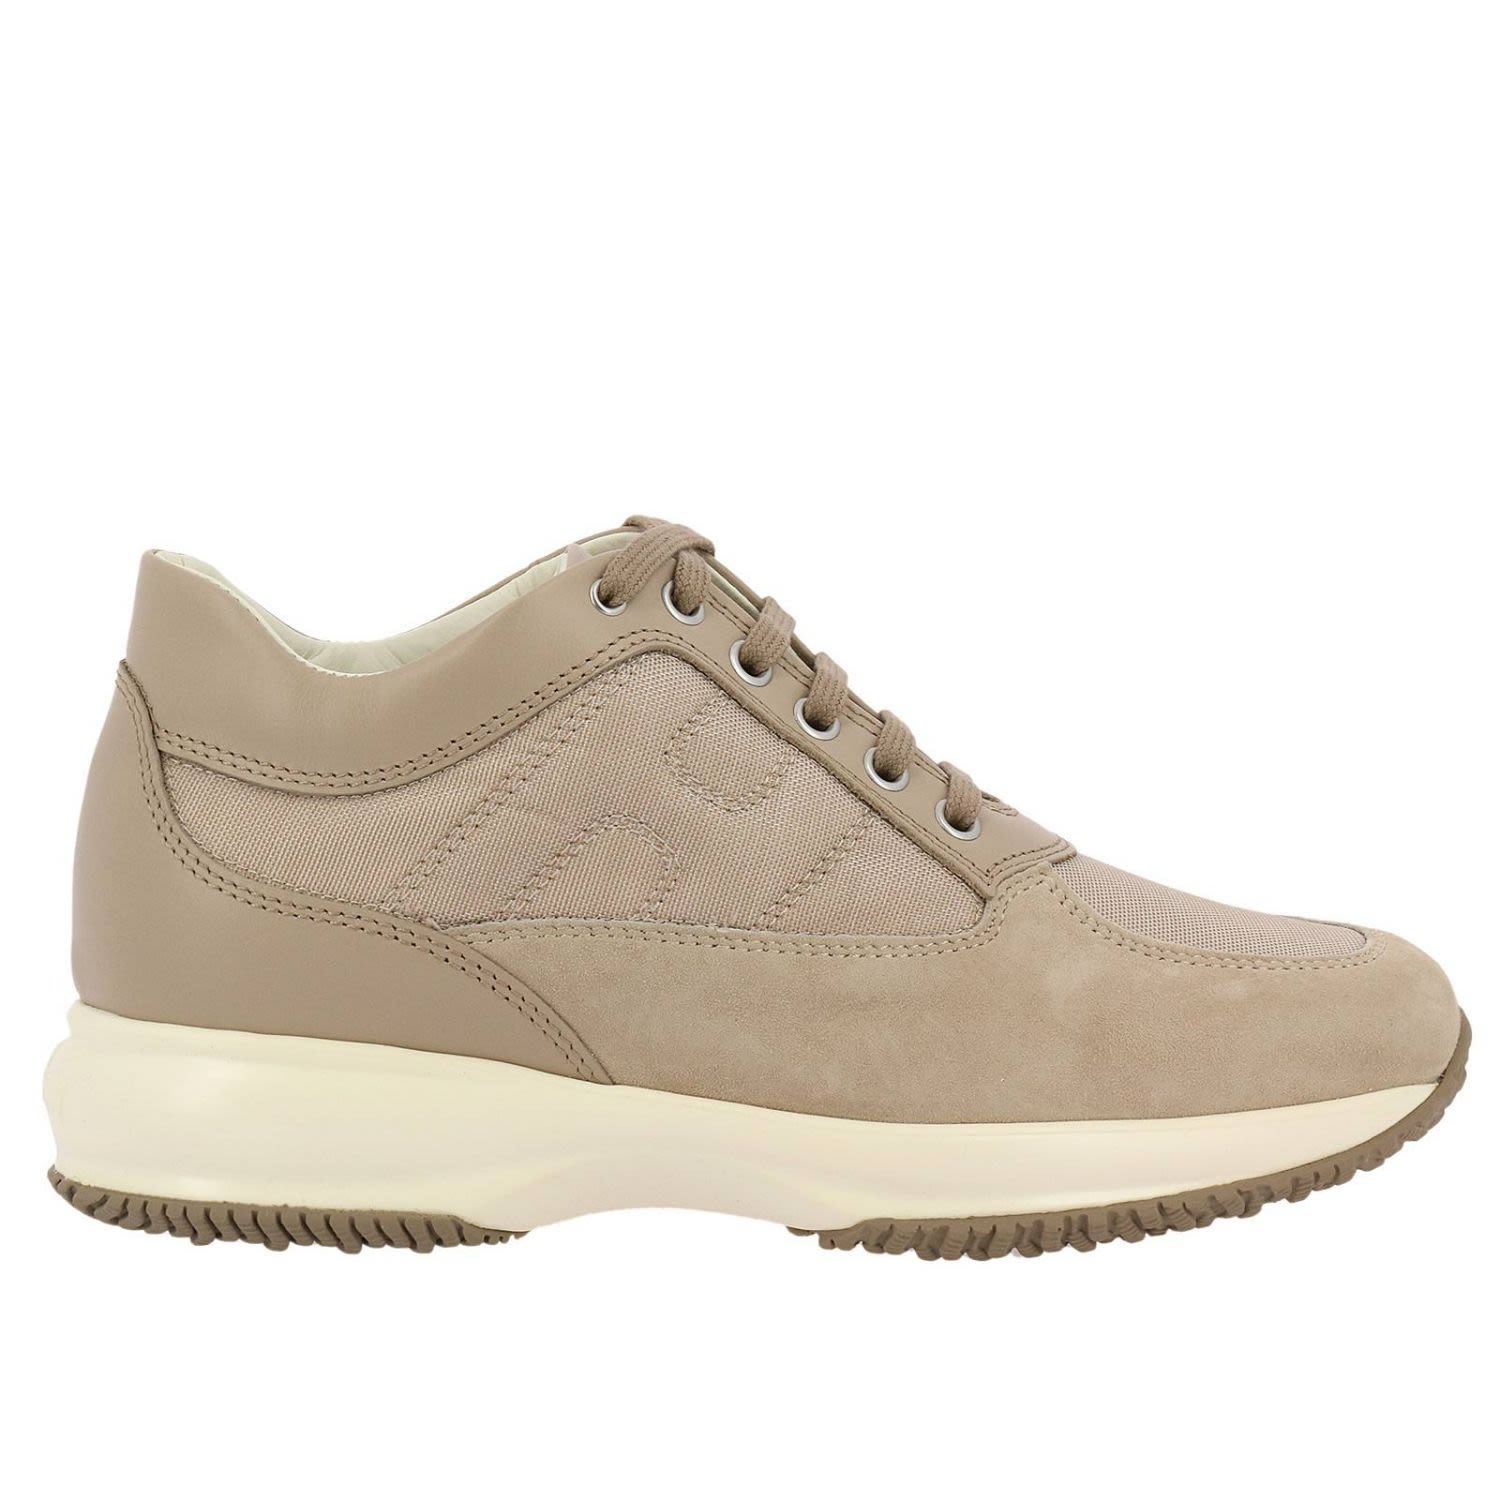 Sneakers for Women On Sale, Light Grey, Leather, 2017, 4.5 Hogan